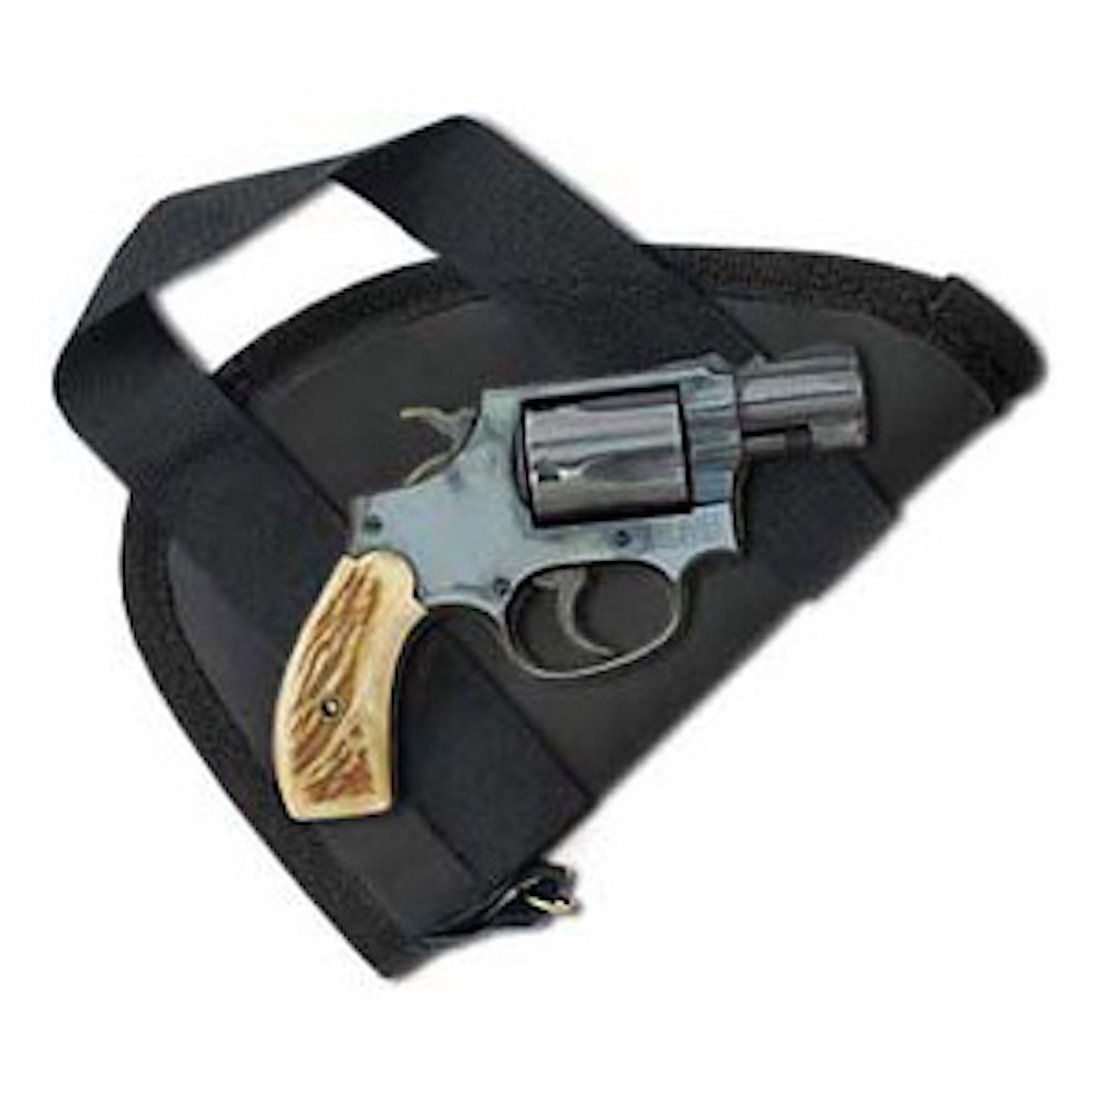 MOD Shark GunLeather Pistol Case//Pistol Rug with Handles for Small Revolvers and Small Semi-Autos Made in USA PA